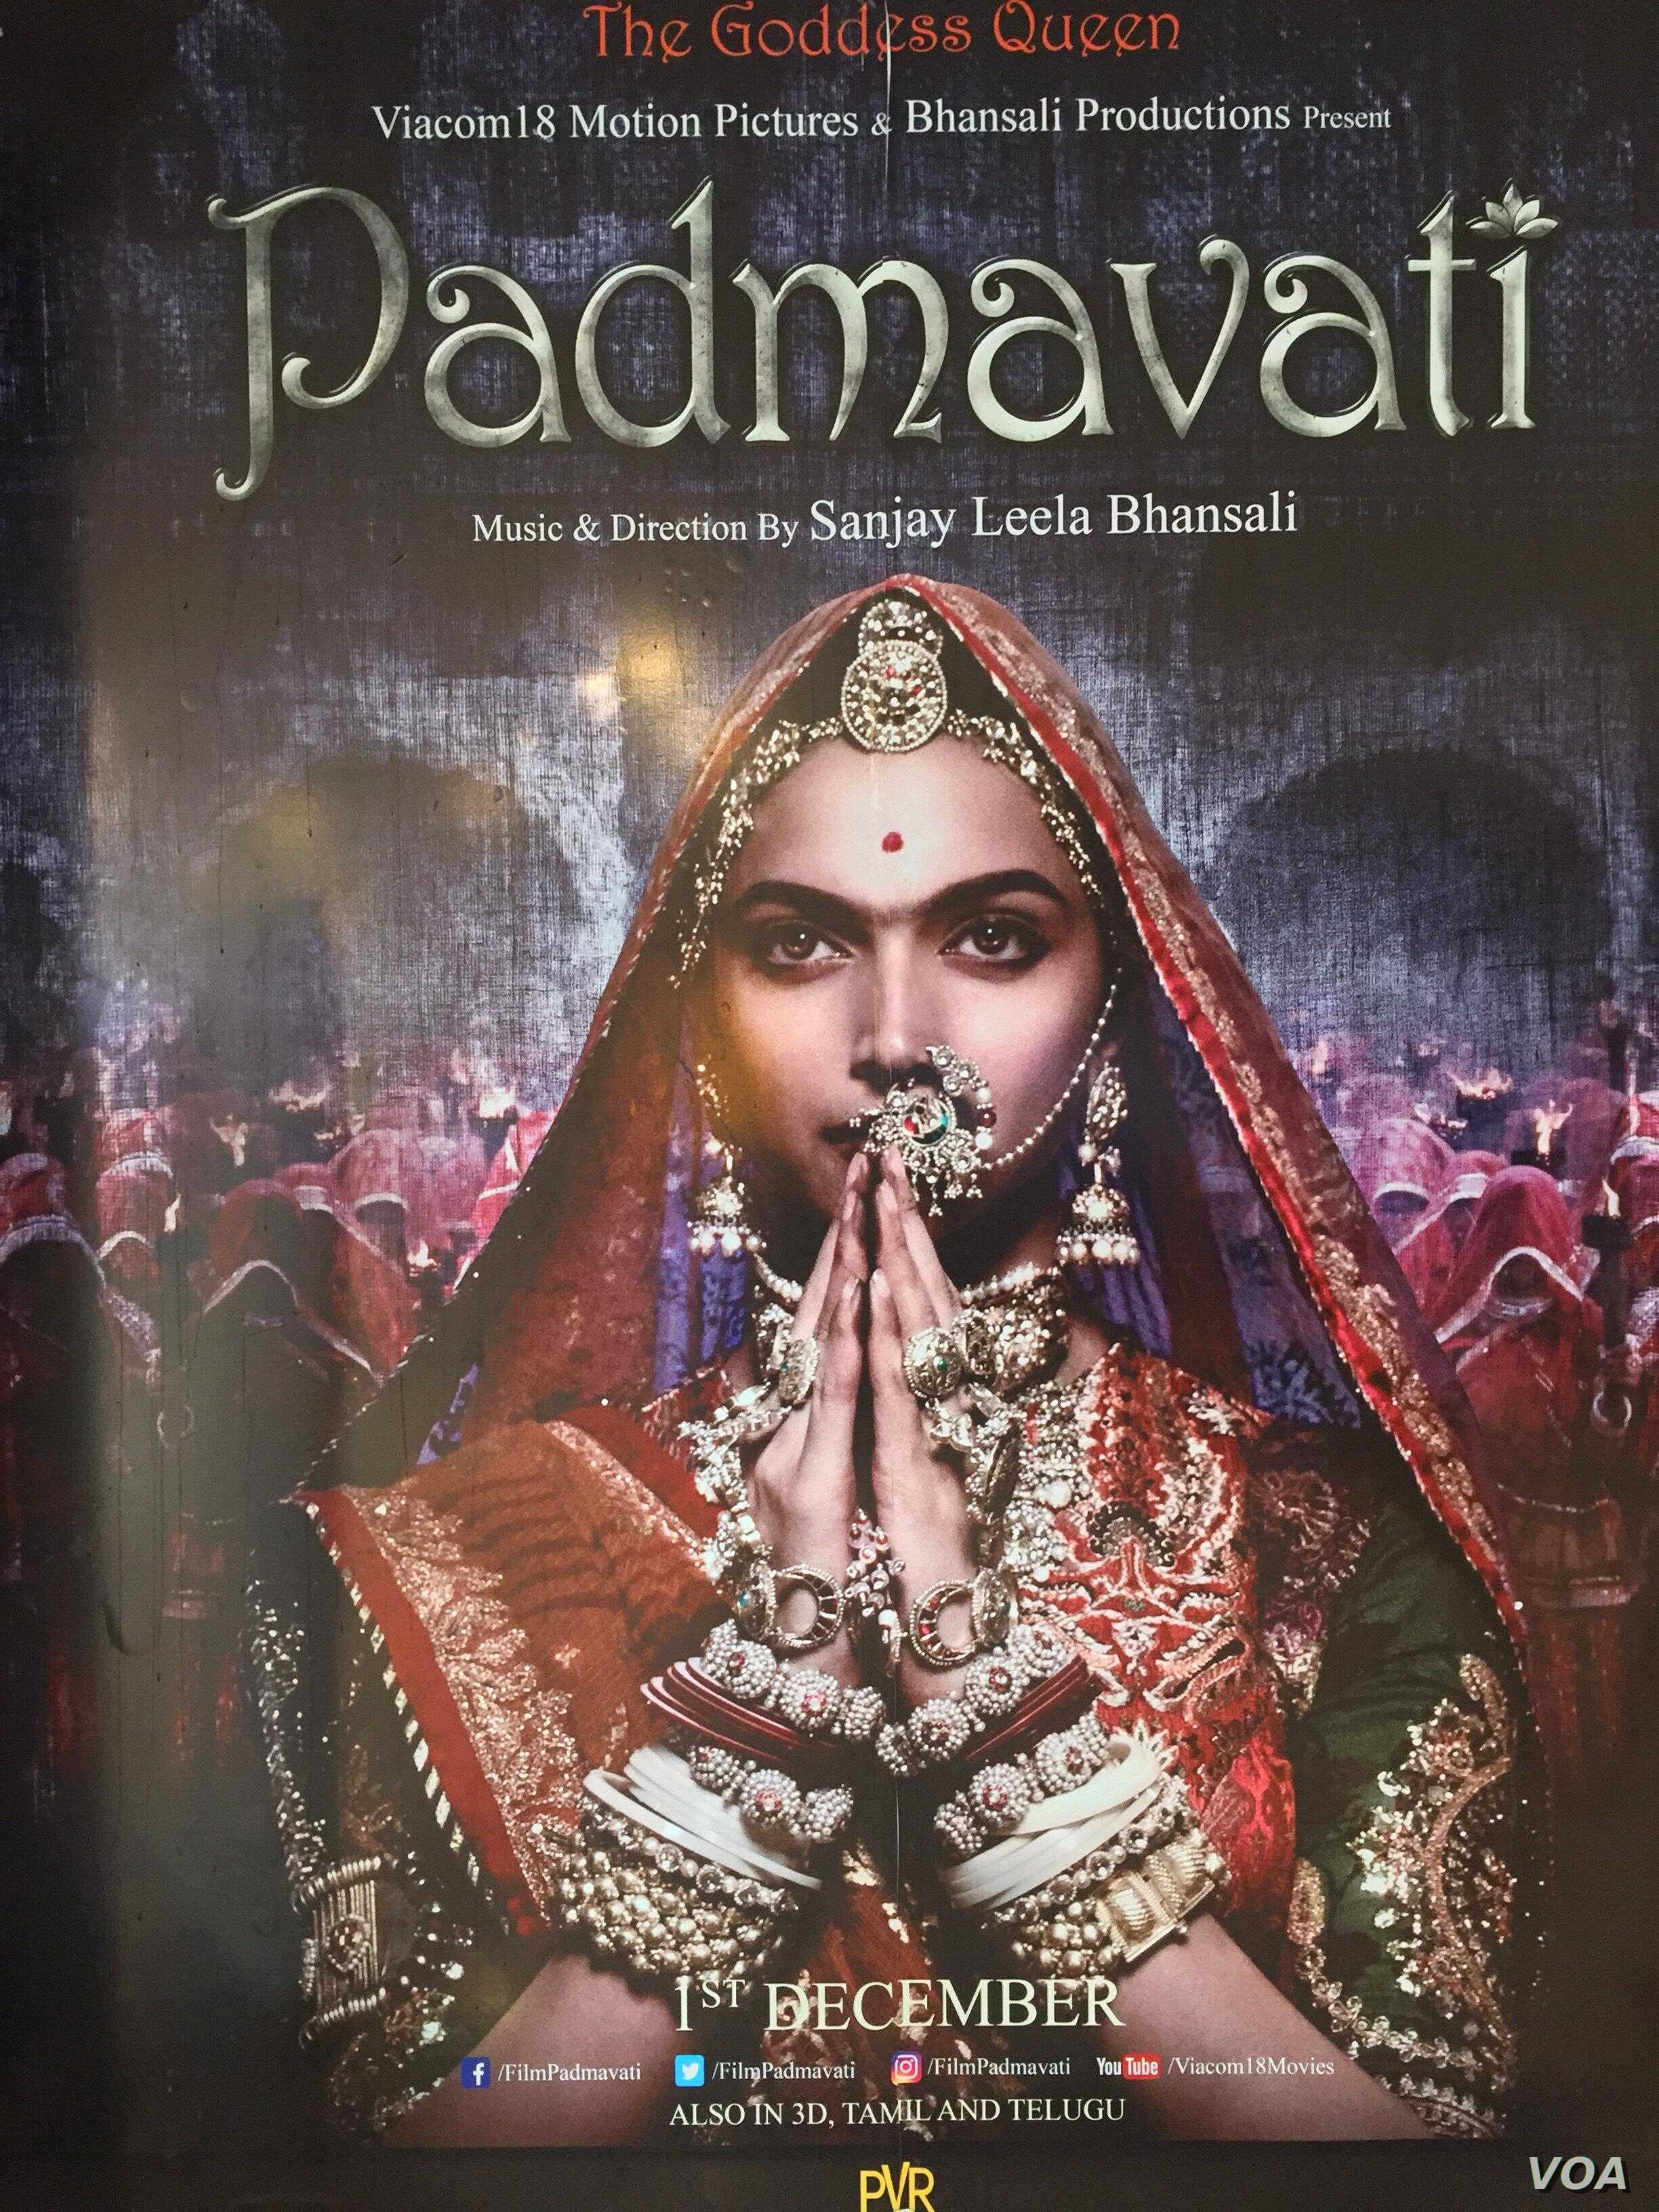 Bollywood Film about Legendary Hindu Queen Embroiled in